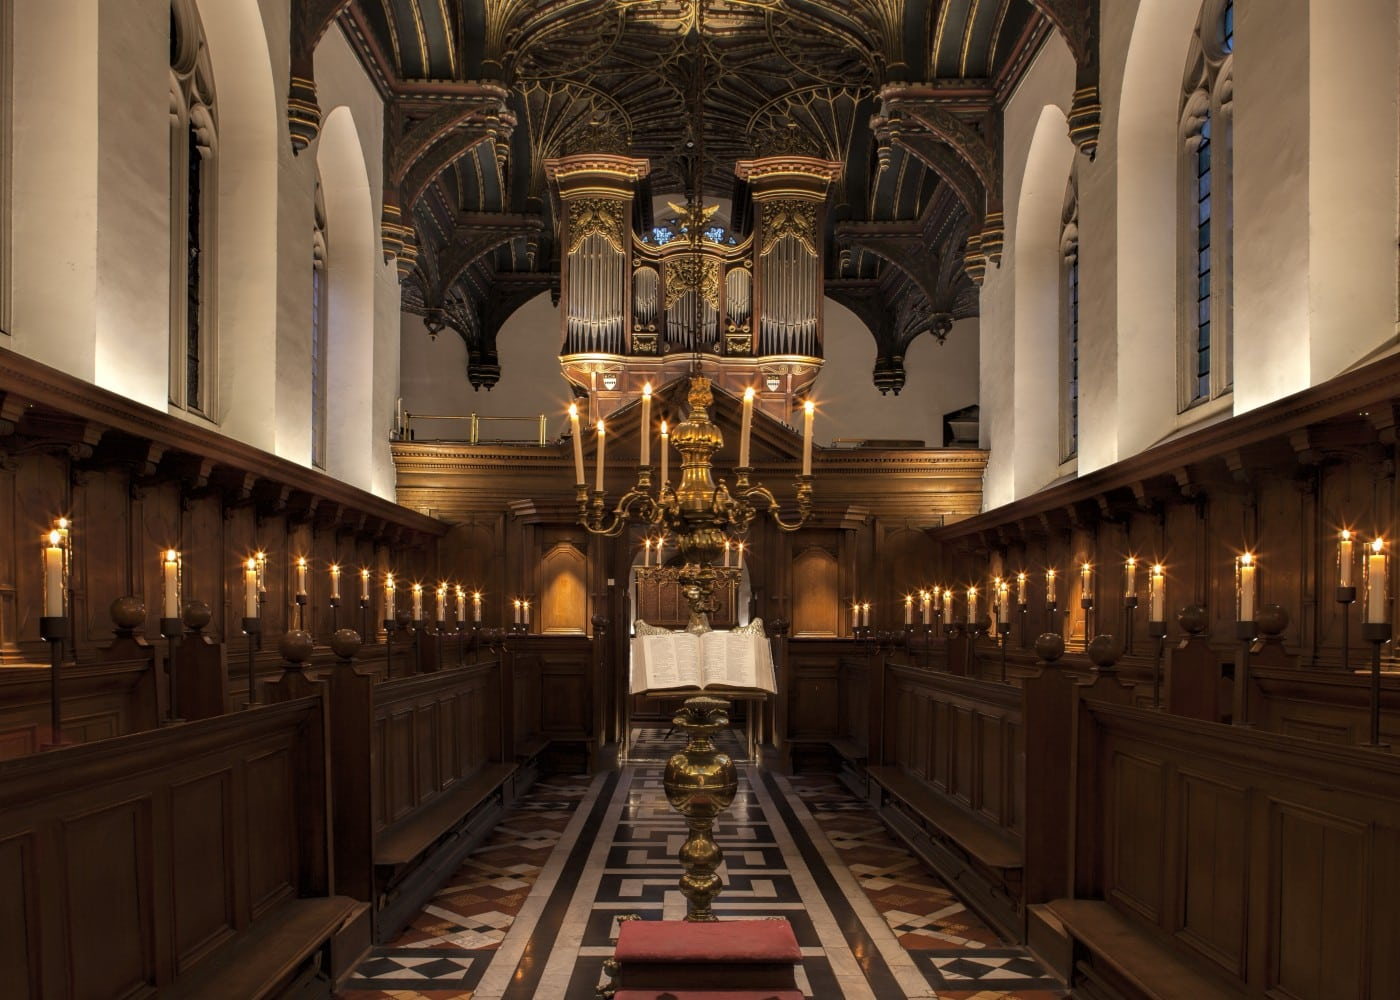 architectural lighting design: Brasenose College Chapel interior